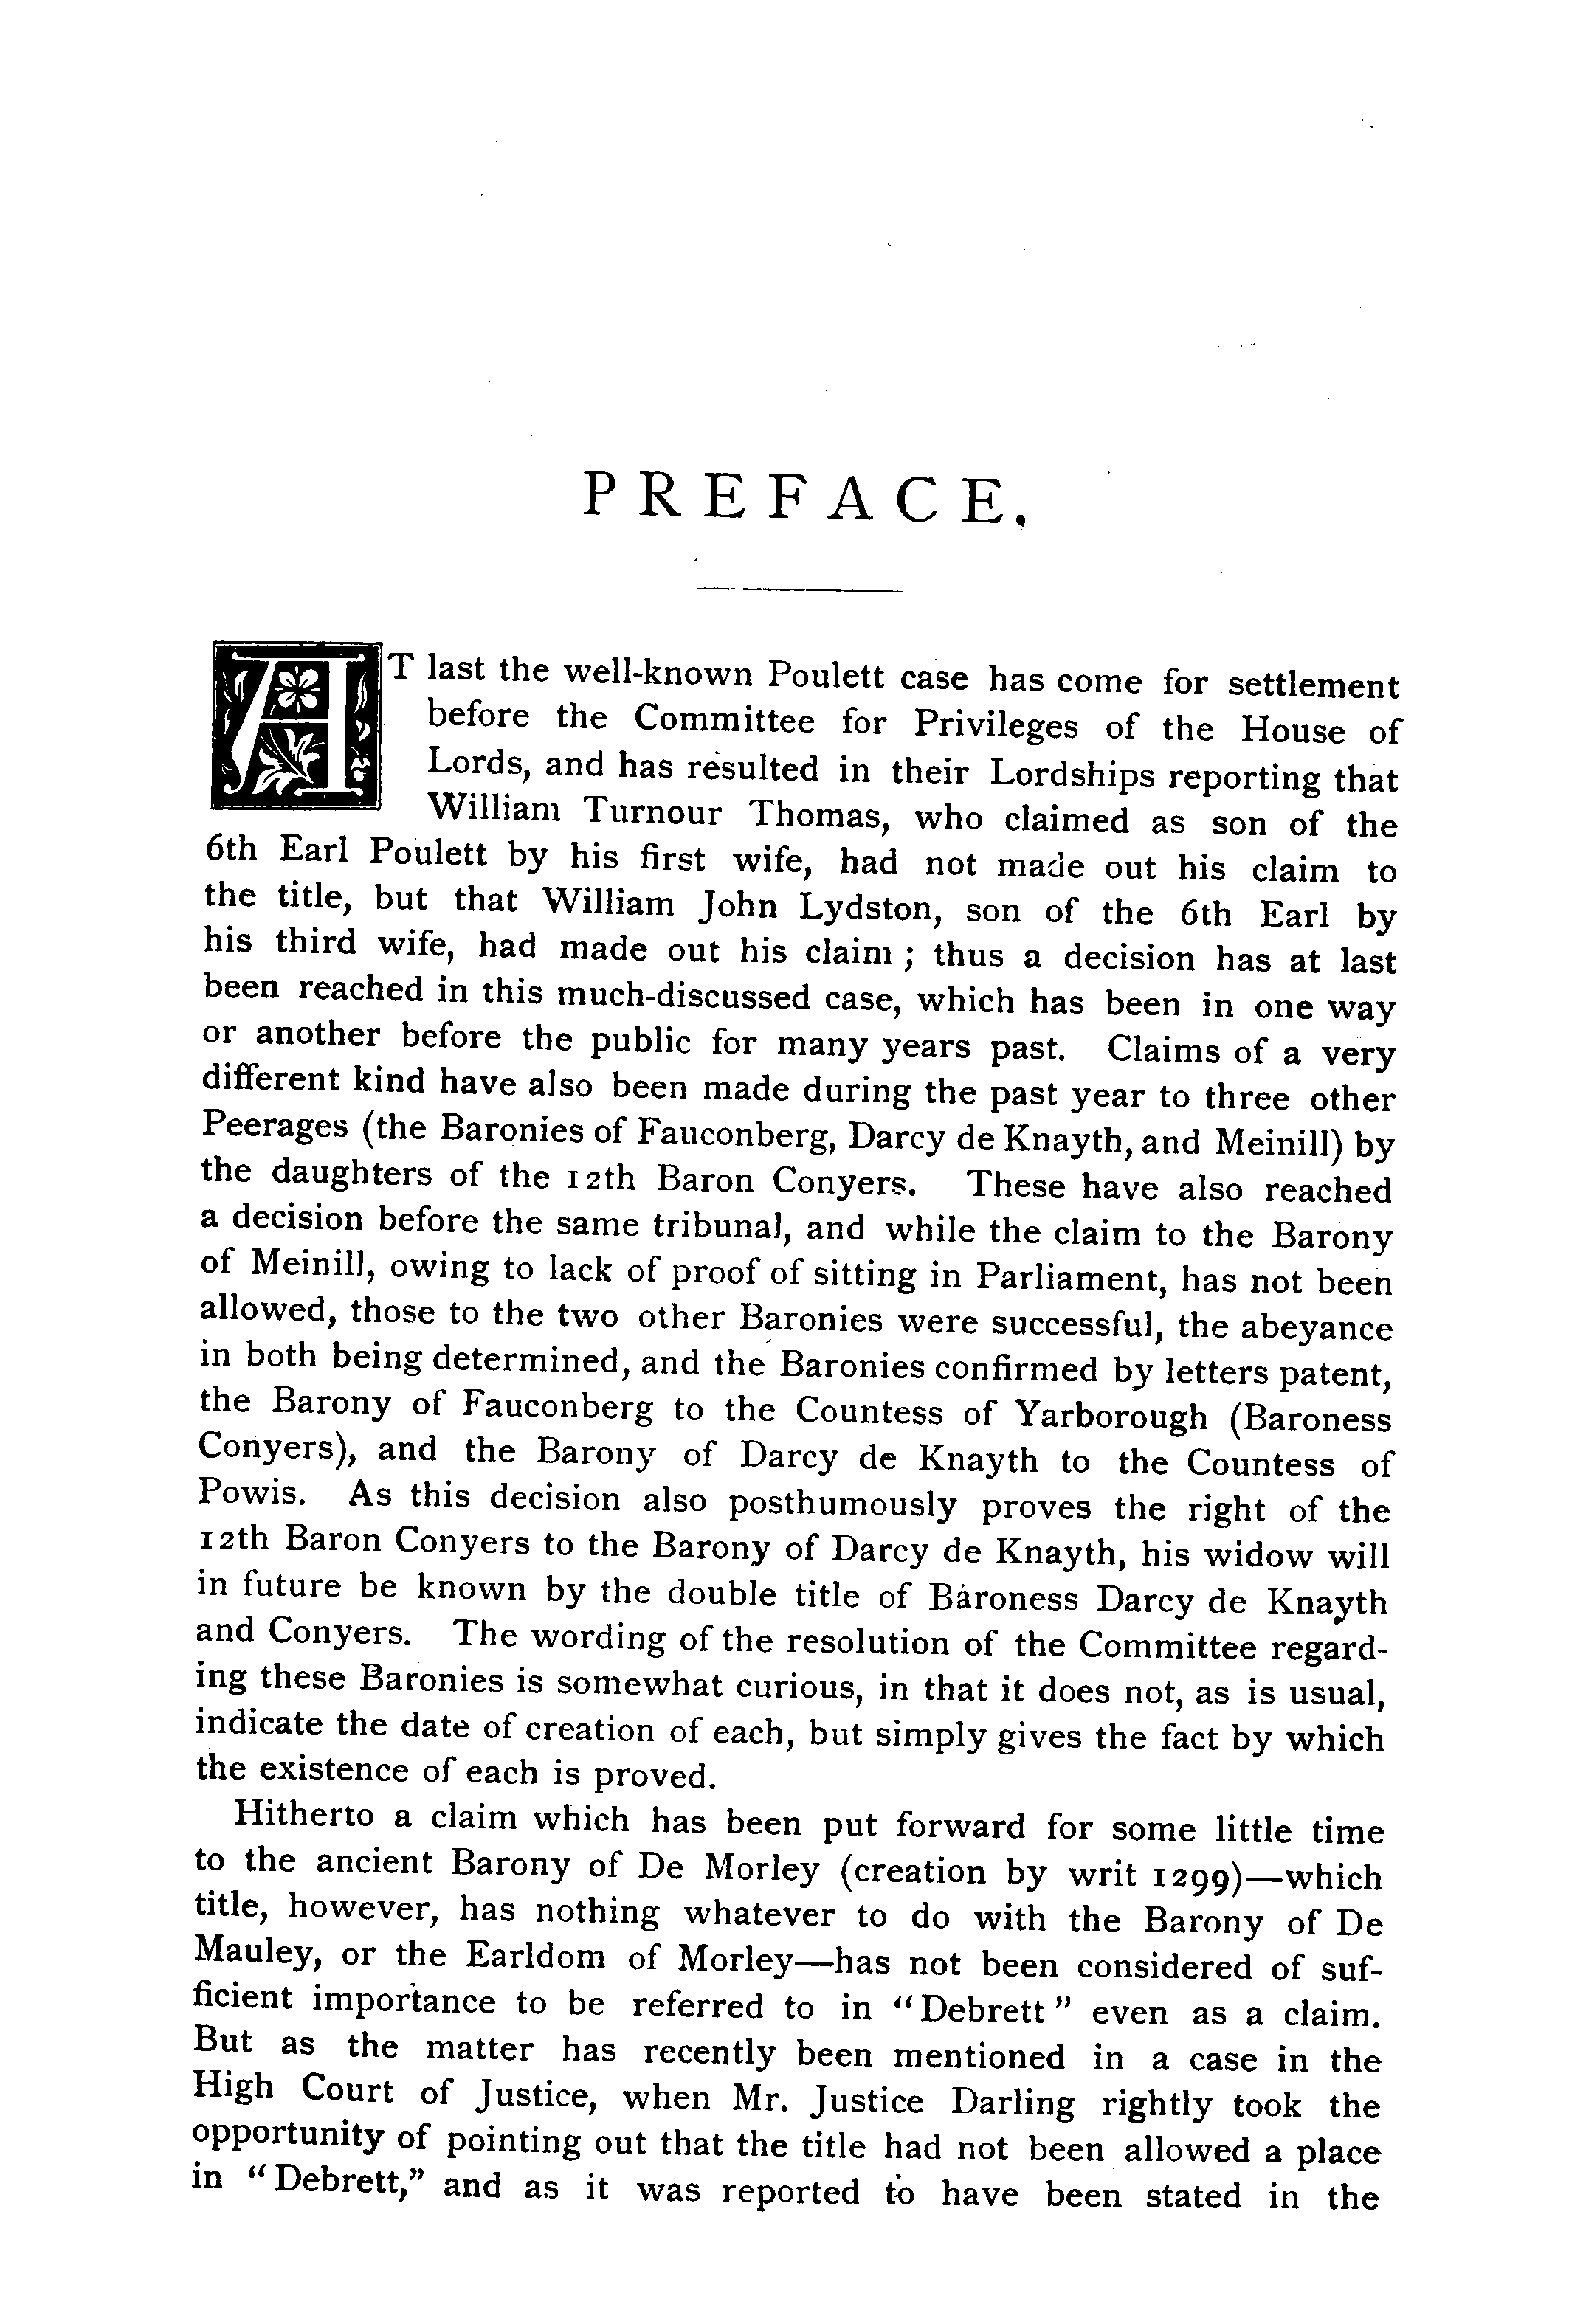 Debrett's Peerage, Baronetage, Knightage and Companionage, 1904 page iii - click to open larger version in a new window